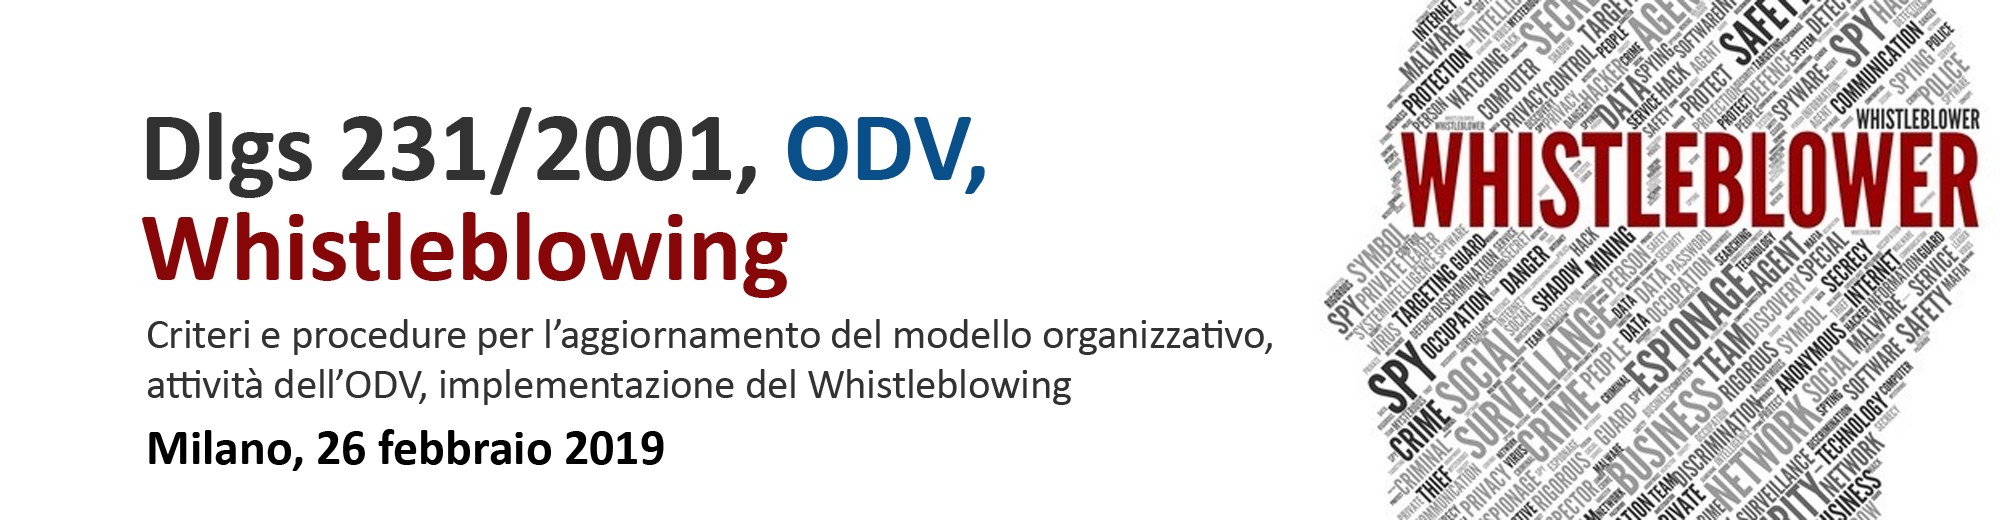 Dlgs 231/2001, ODV, Whistleblowing